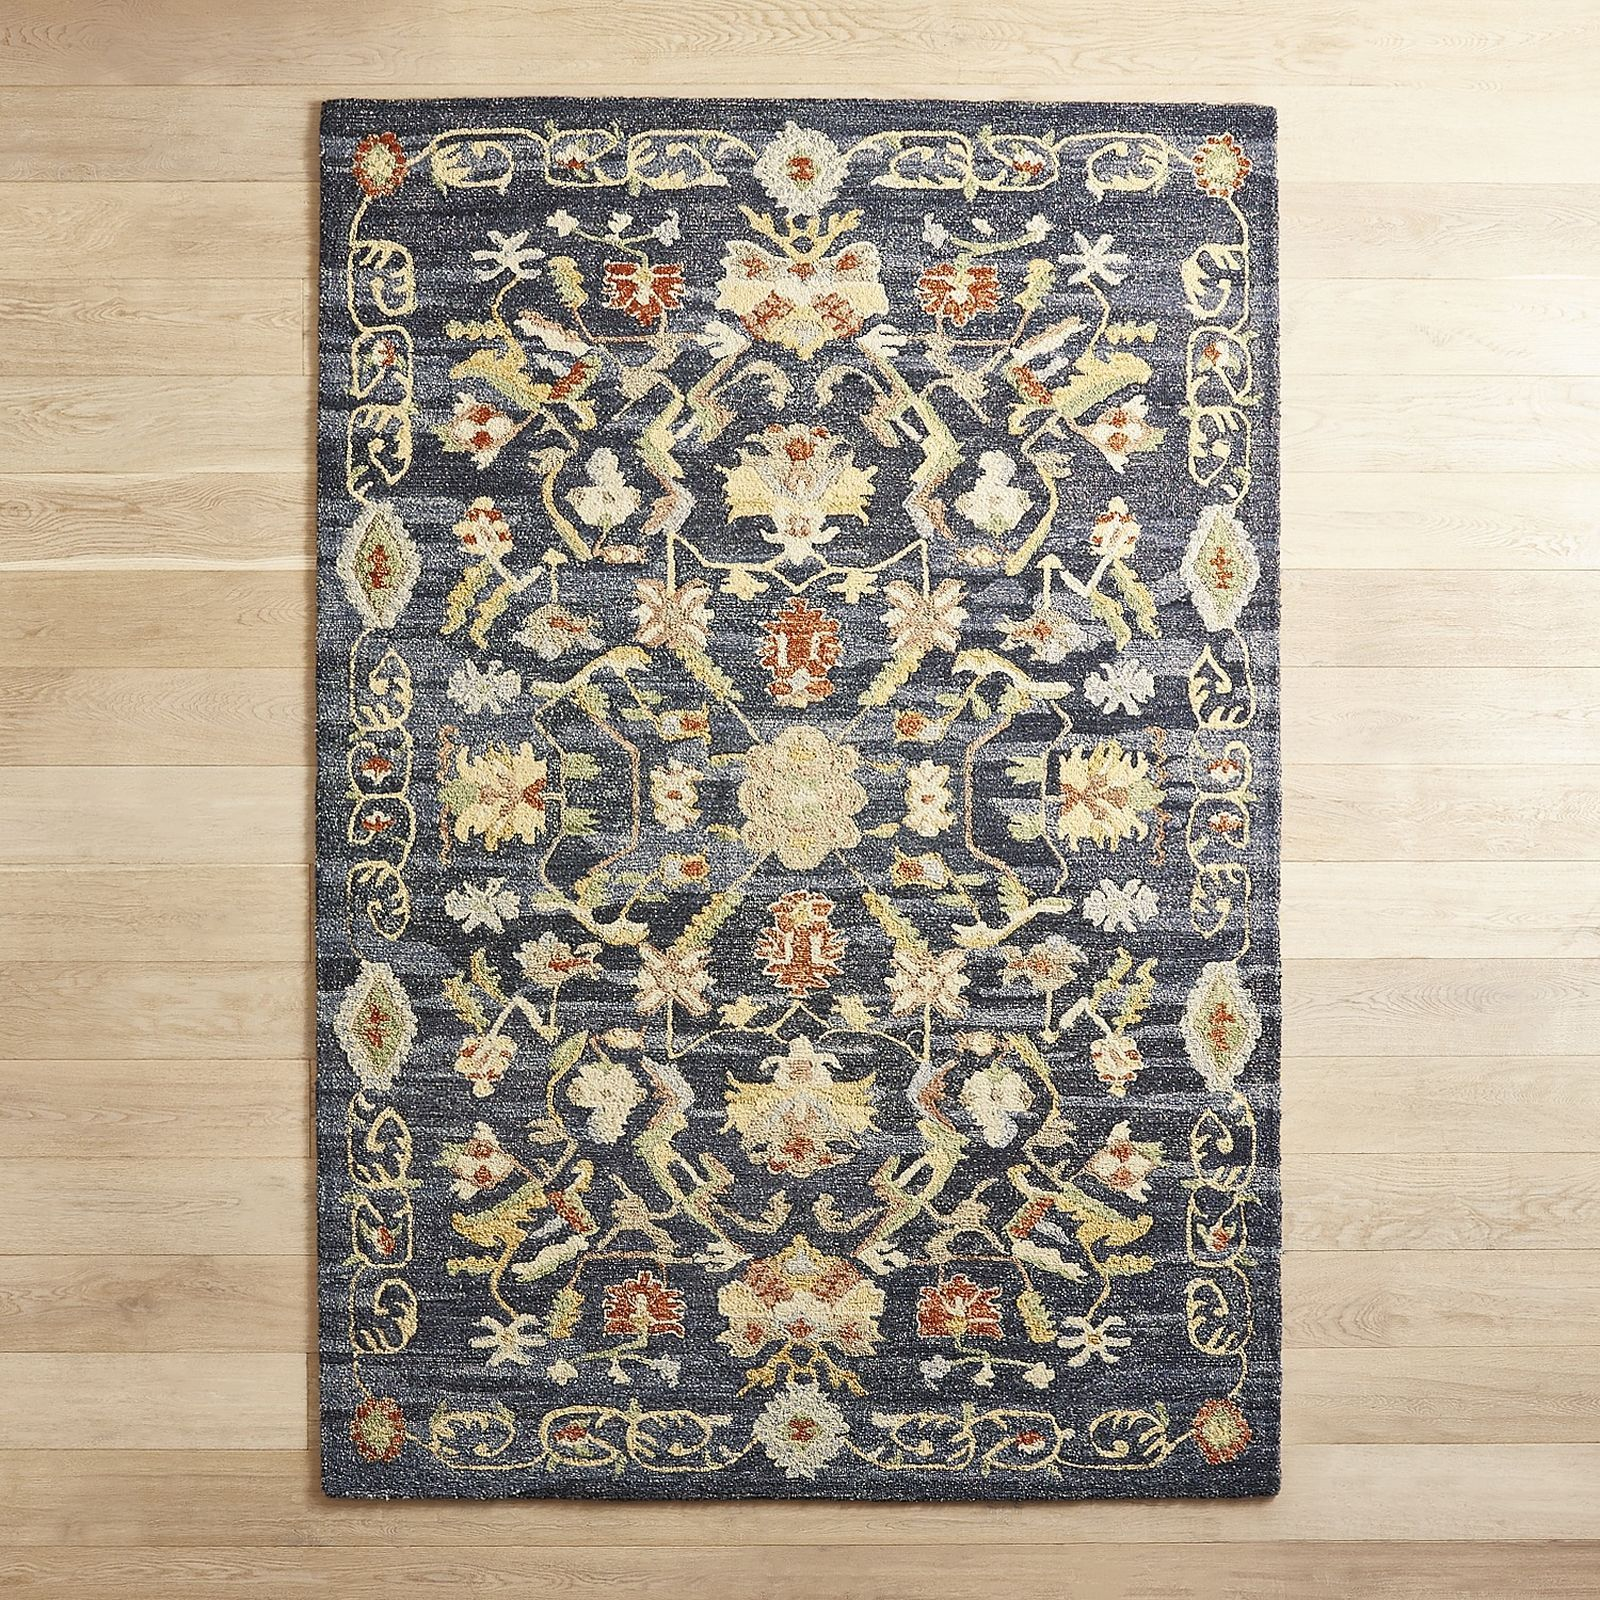 pier 1 living room rugs%0A Find this Pin and more on Living Room Inspiration